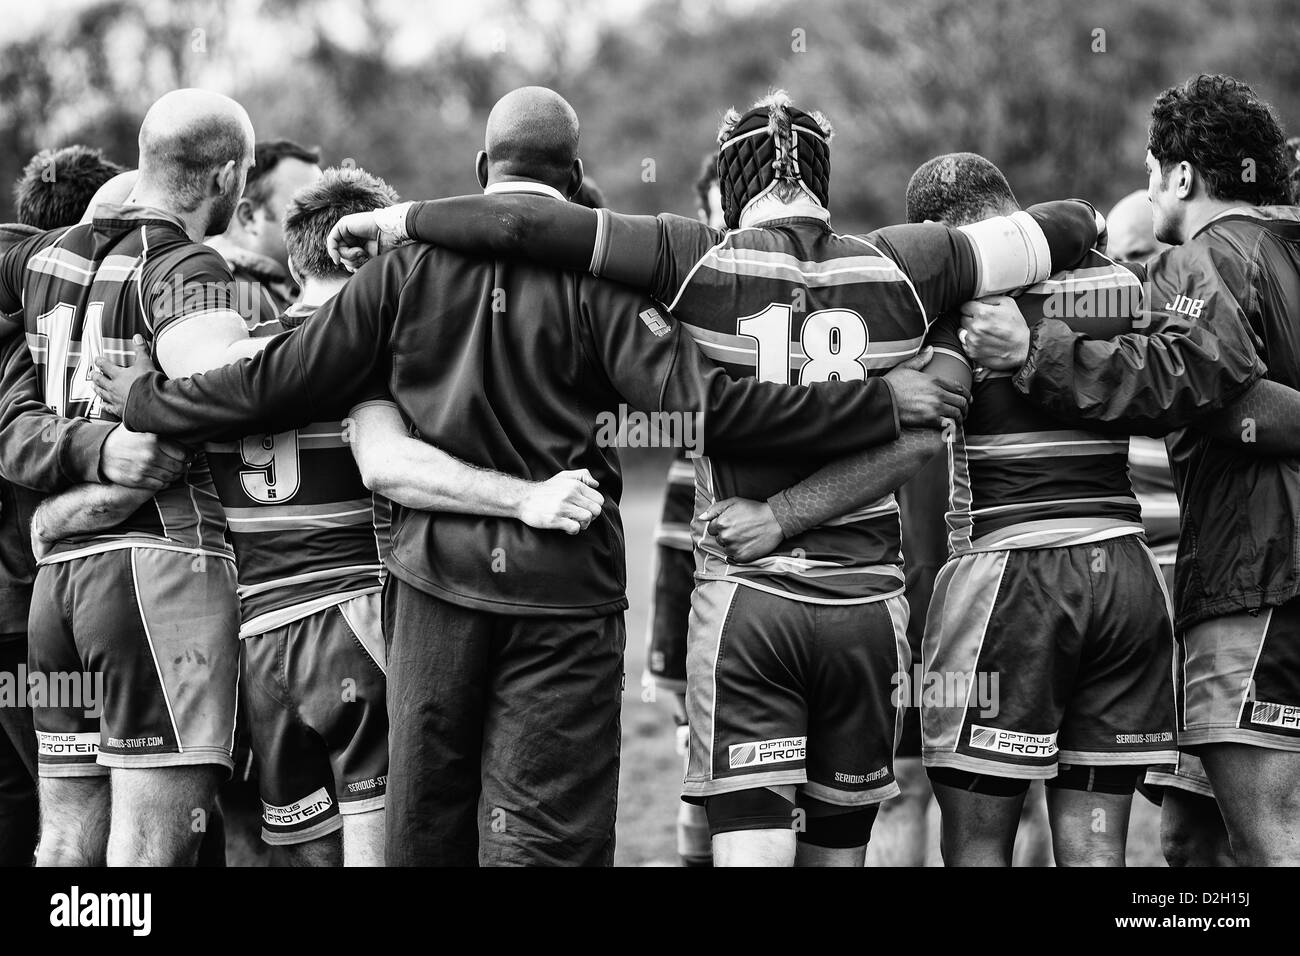 A team of rugby players huddle after a match - Stock Image